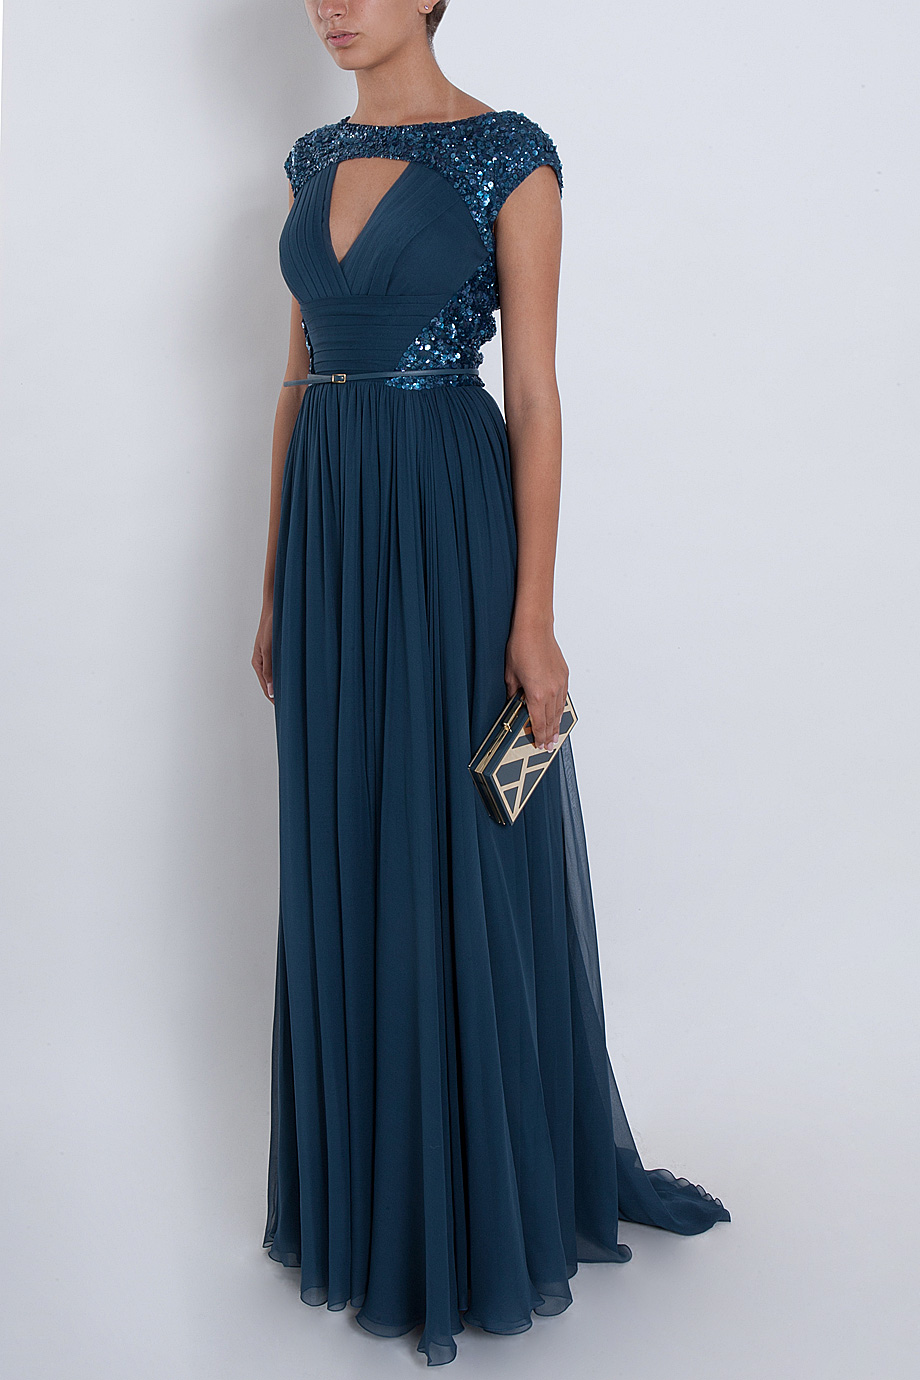 Lyst Elie Saab Chiffon Beaded Cap Sleeve Gown In Blue